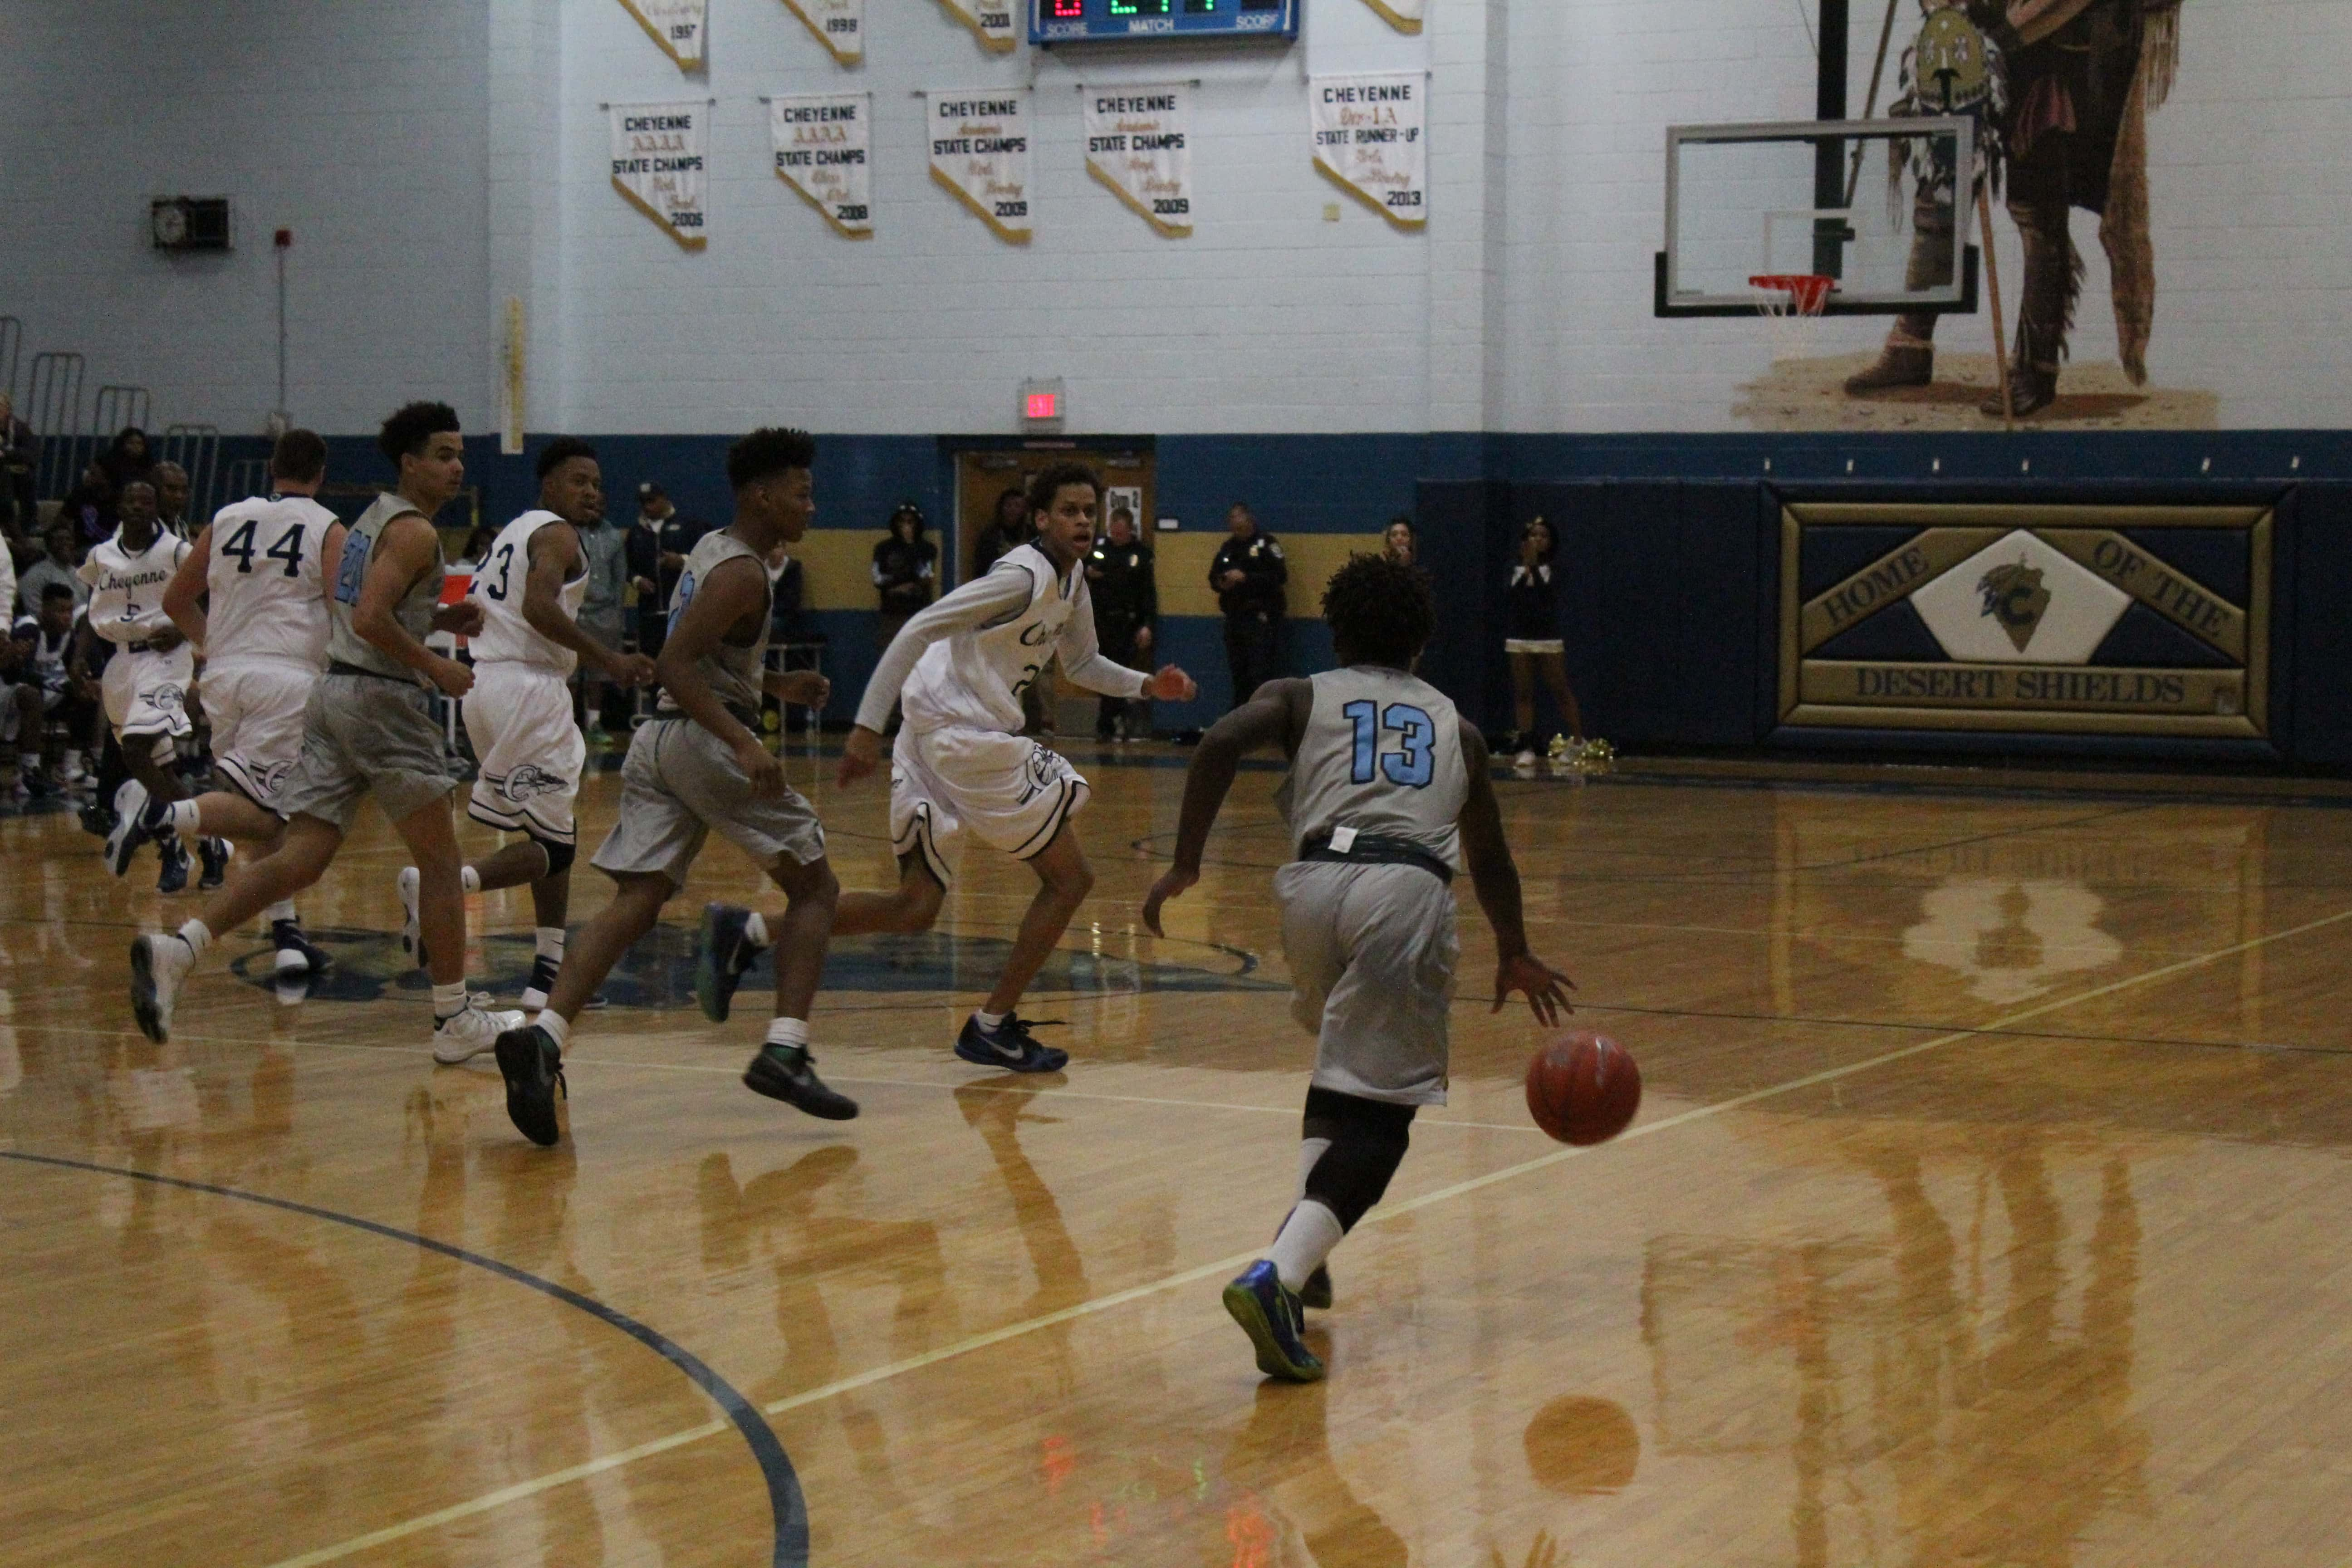 Cheyenne Wins At Home Against Canyon Springs | Las Vegas